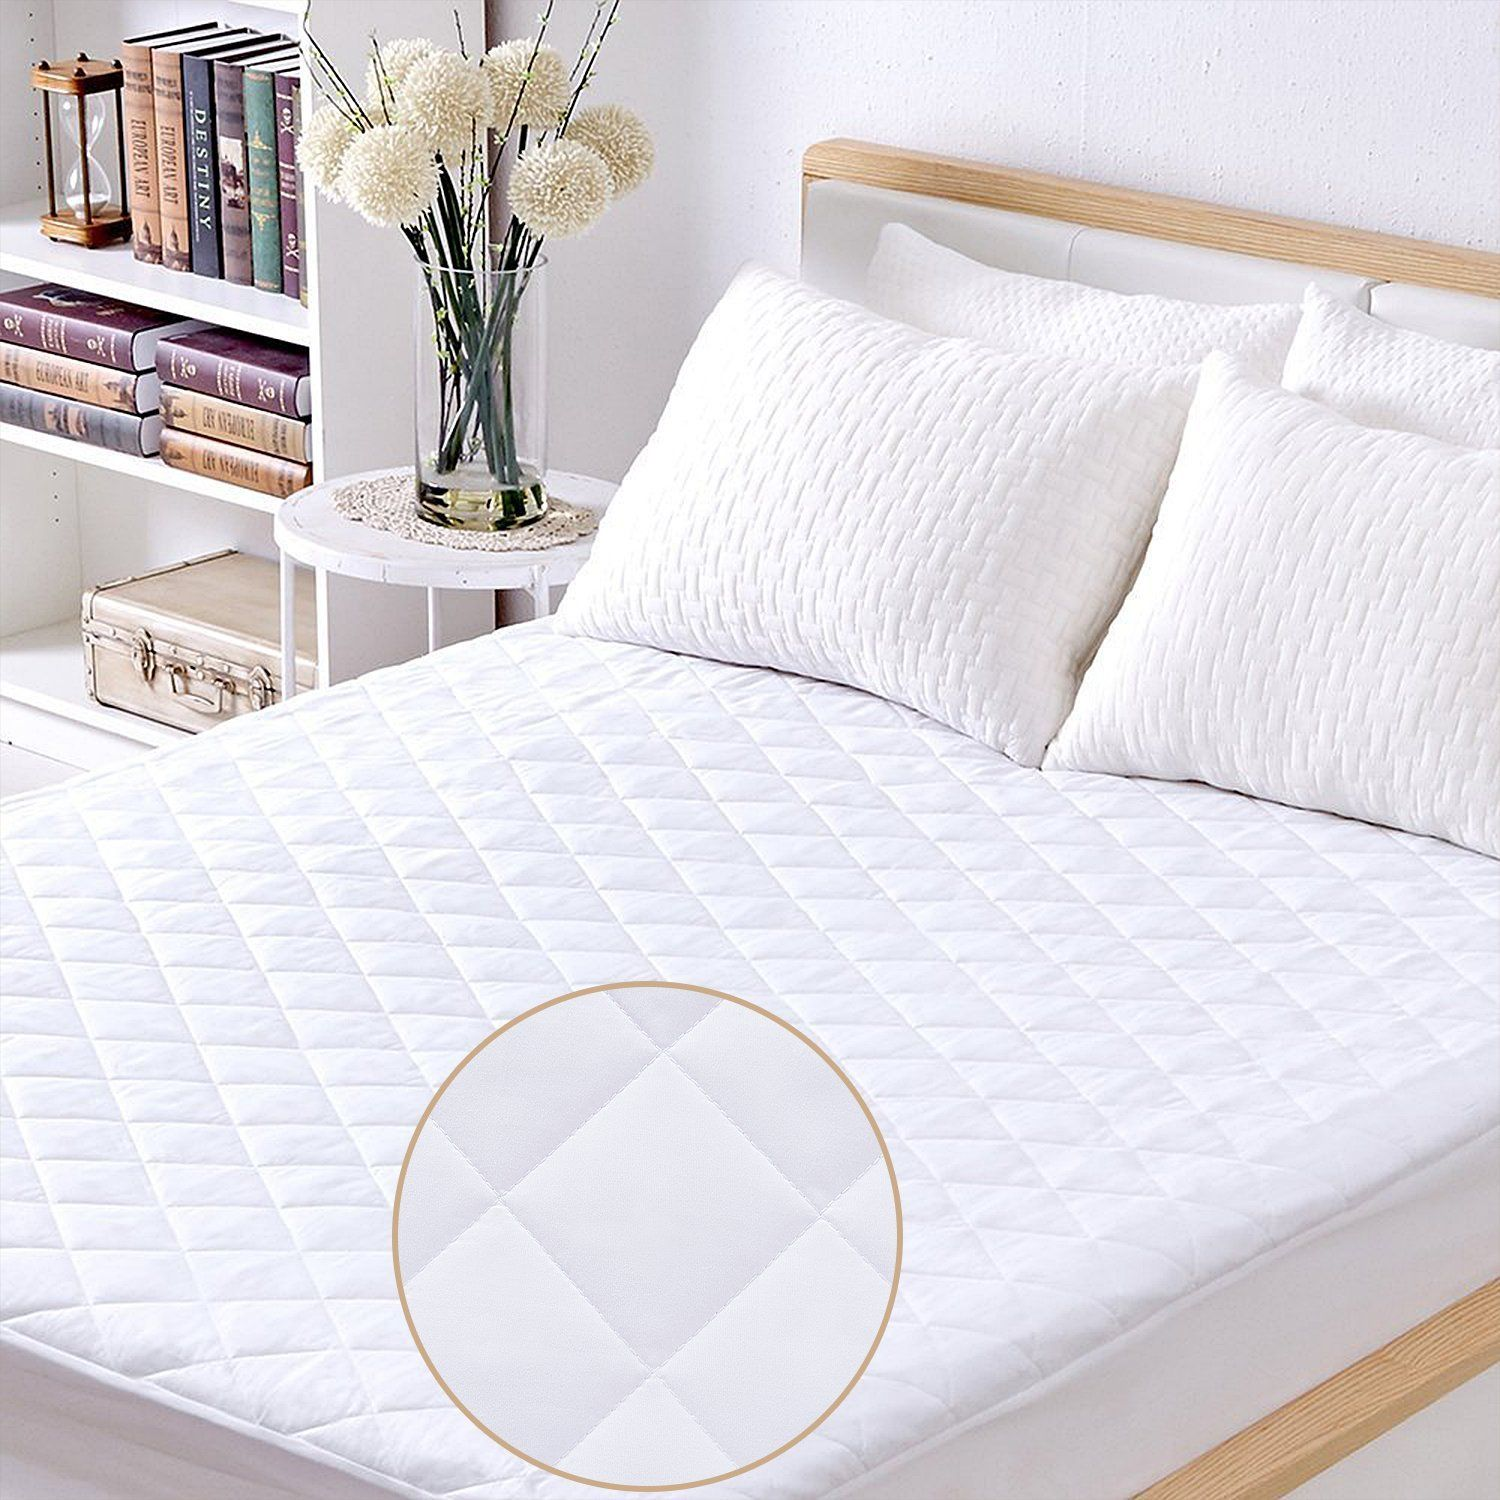 100 Waterproof Hypoallergenic Quilted Fitted Mattress Pad Stretched To Fit Deep Pocket Mattress Protector Vinyl Fre Mattress Pad Cover Mattress Pad Mattress